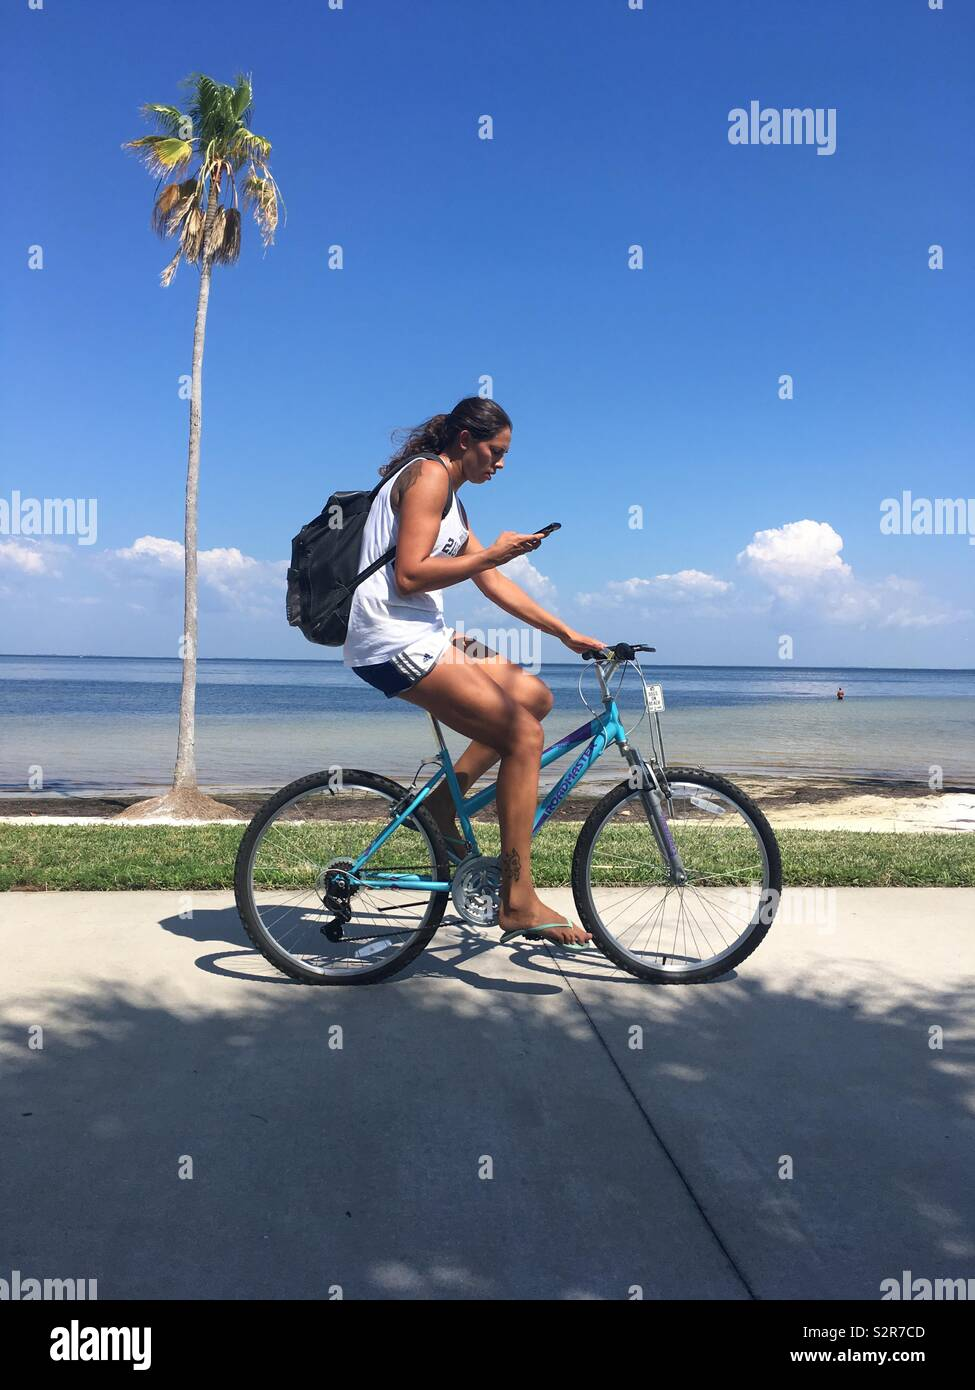 Woman on bike using cell phone while cycling past a palm tree - Stock Image